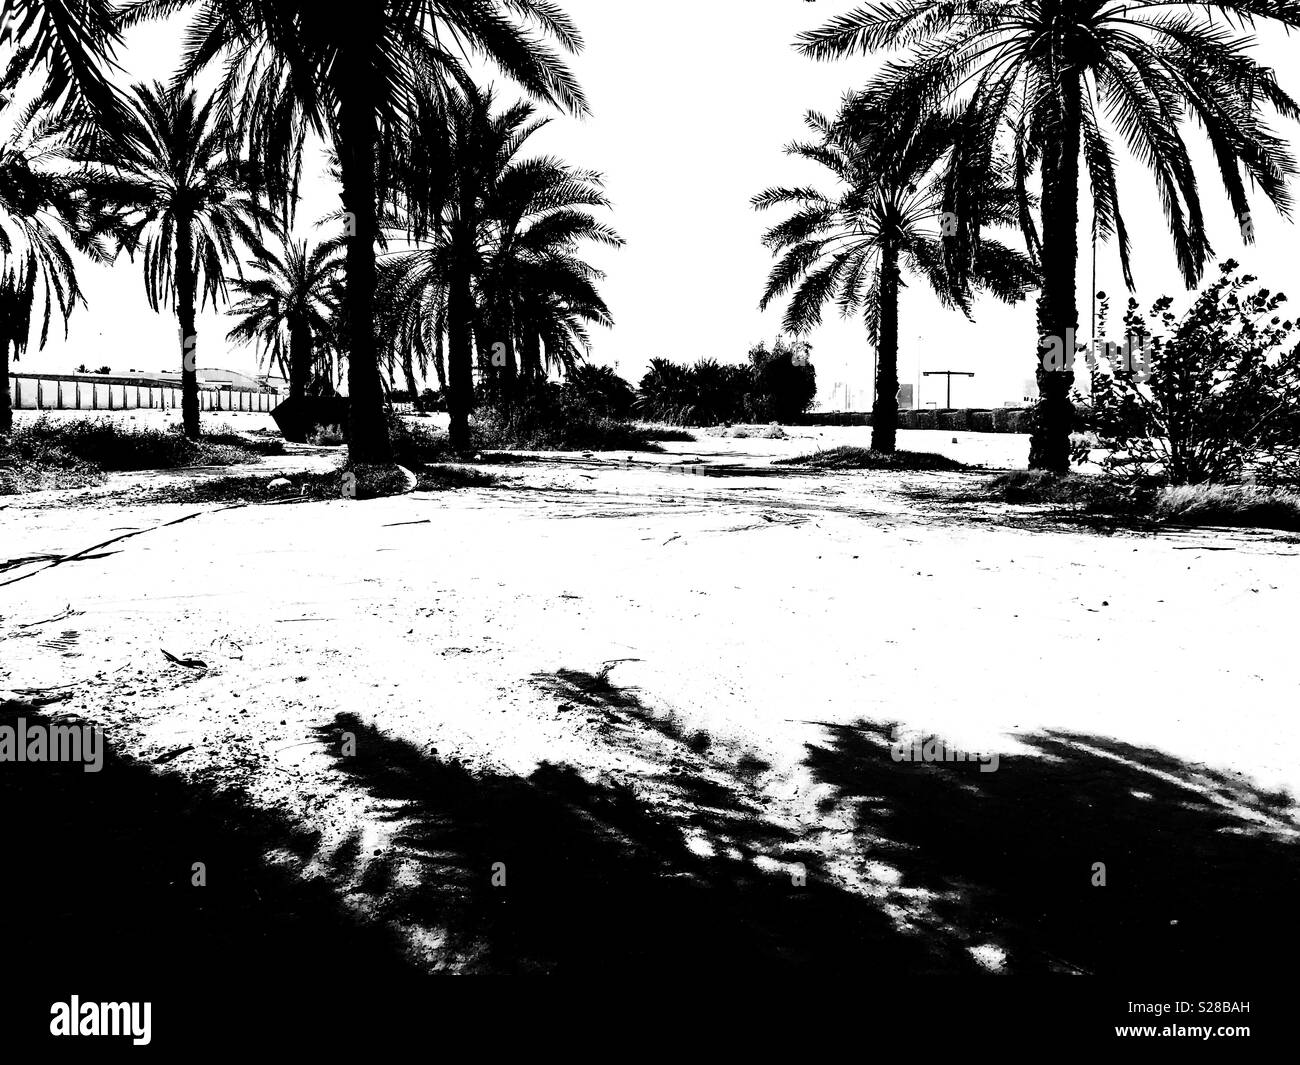 Hot summer midday Shadows of Palm trees in Abu Dhabi, UAE - Stock Image